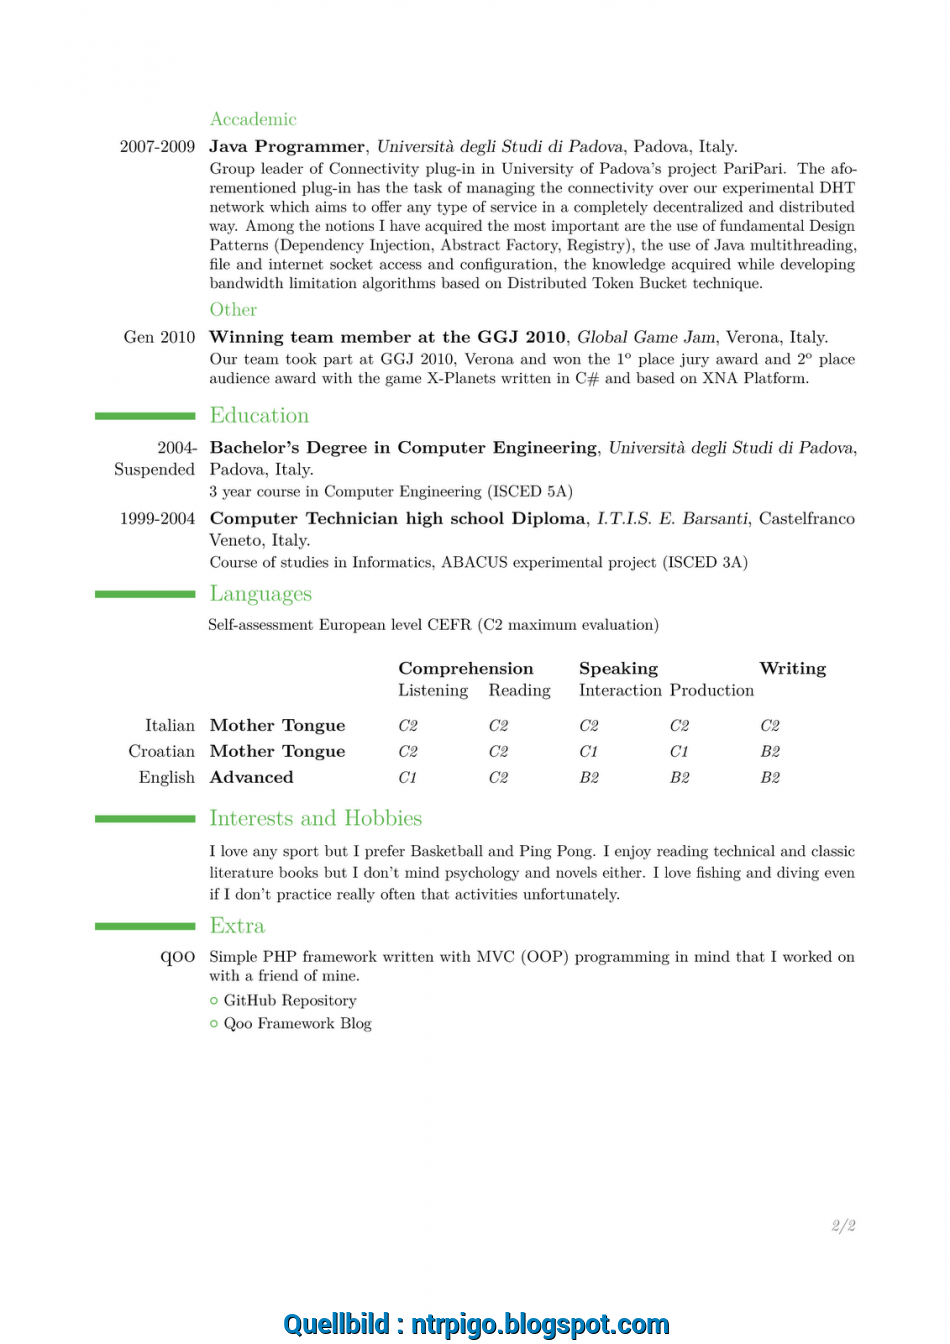 Qualifiziert Here There Is An Example Of My CV Compiled In English Tweaking, Template: